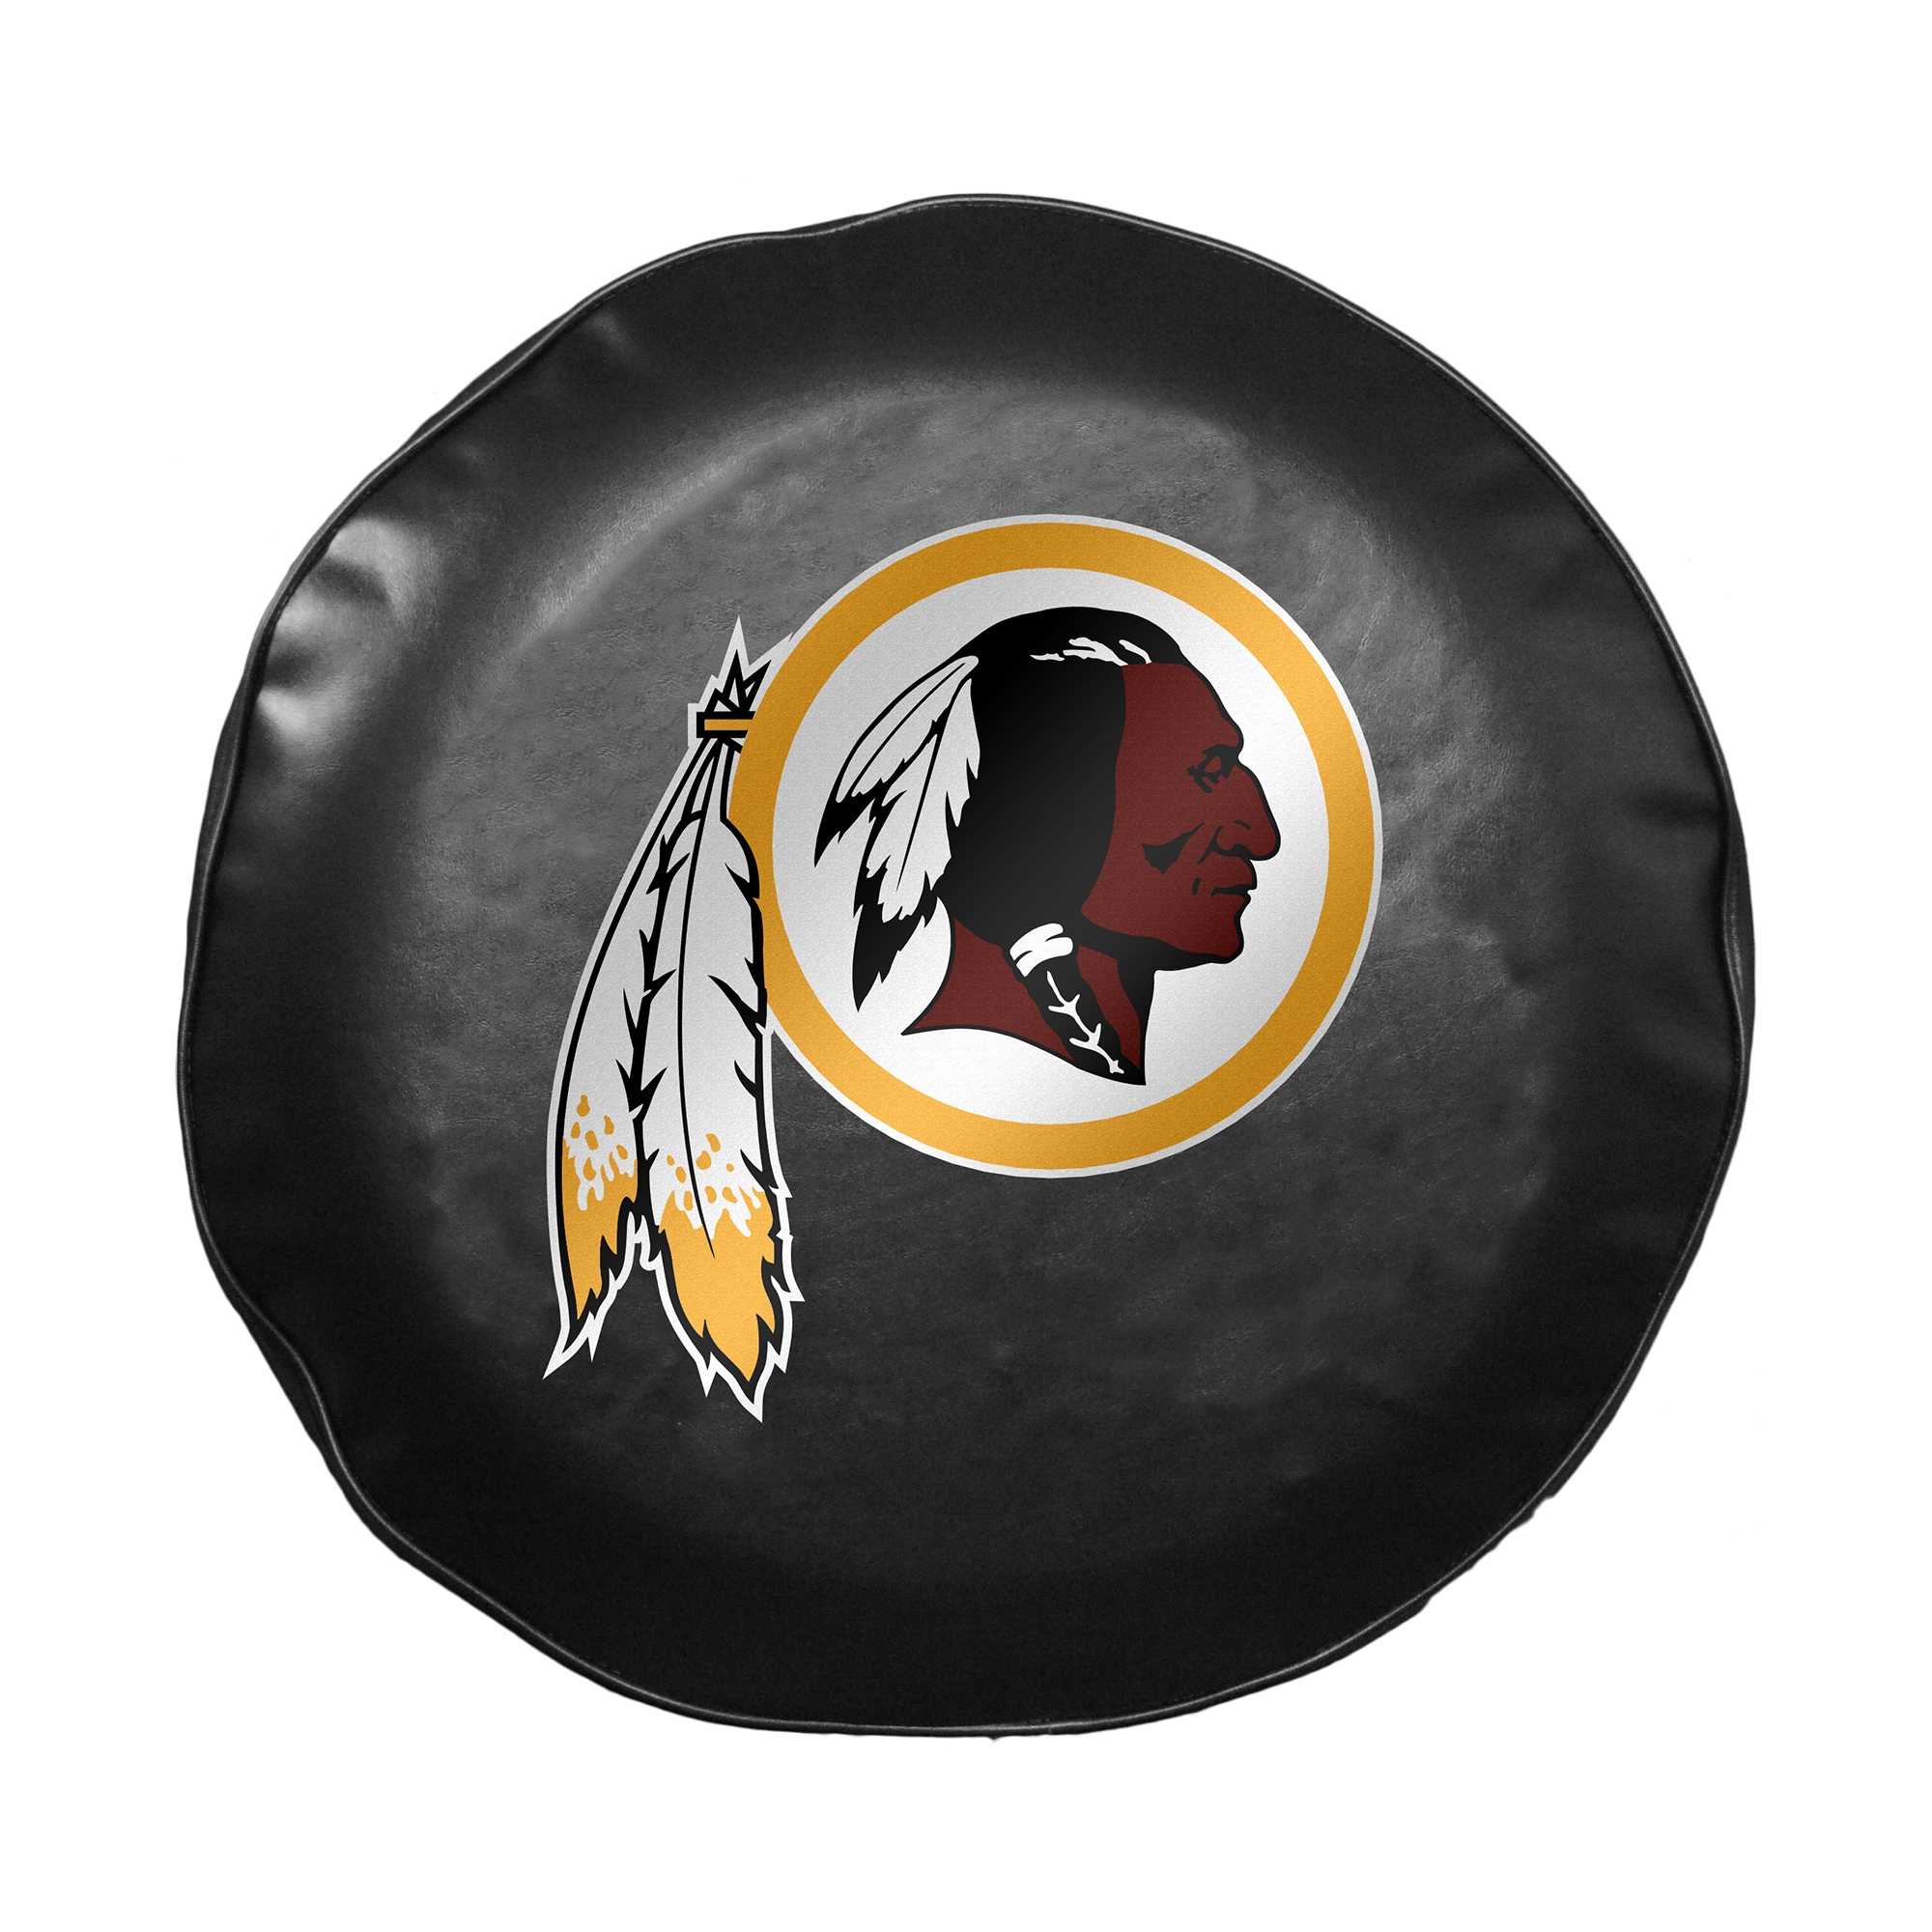 REDSKINS Std Tire Cover